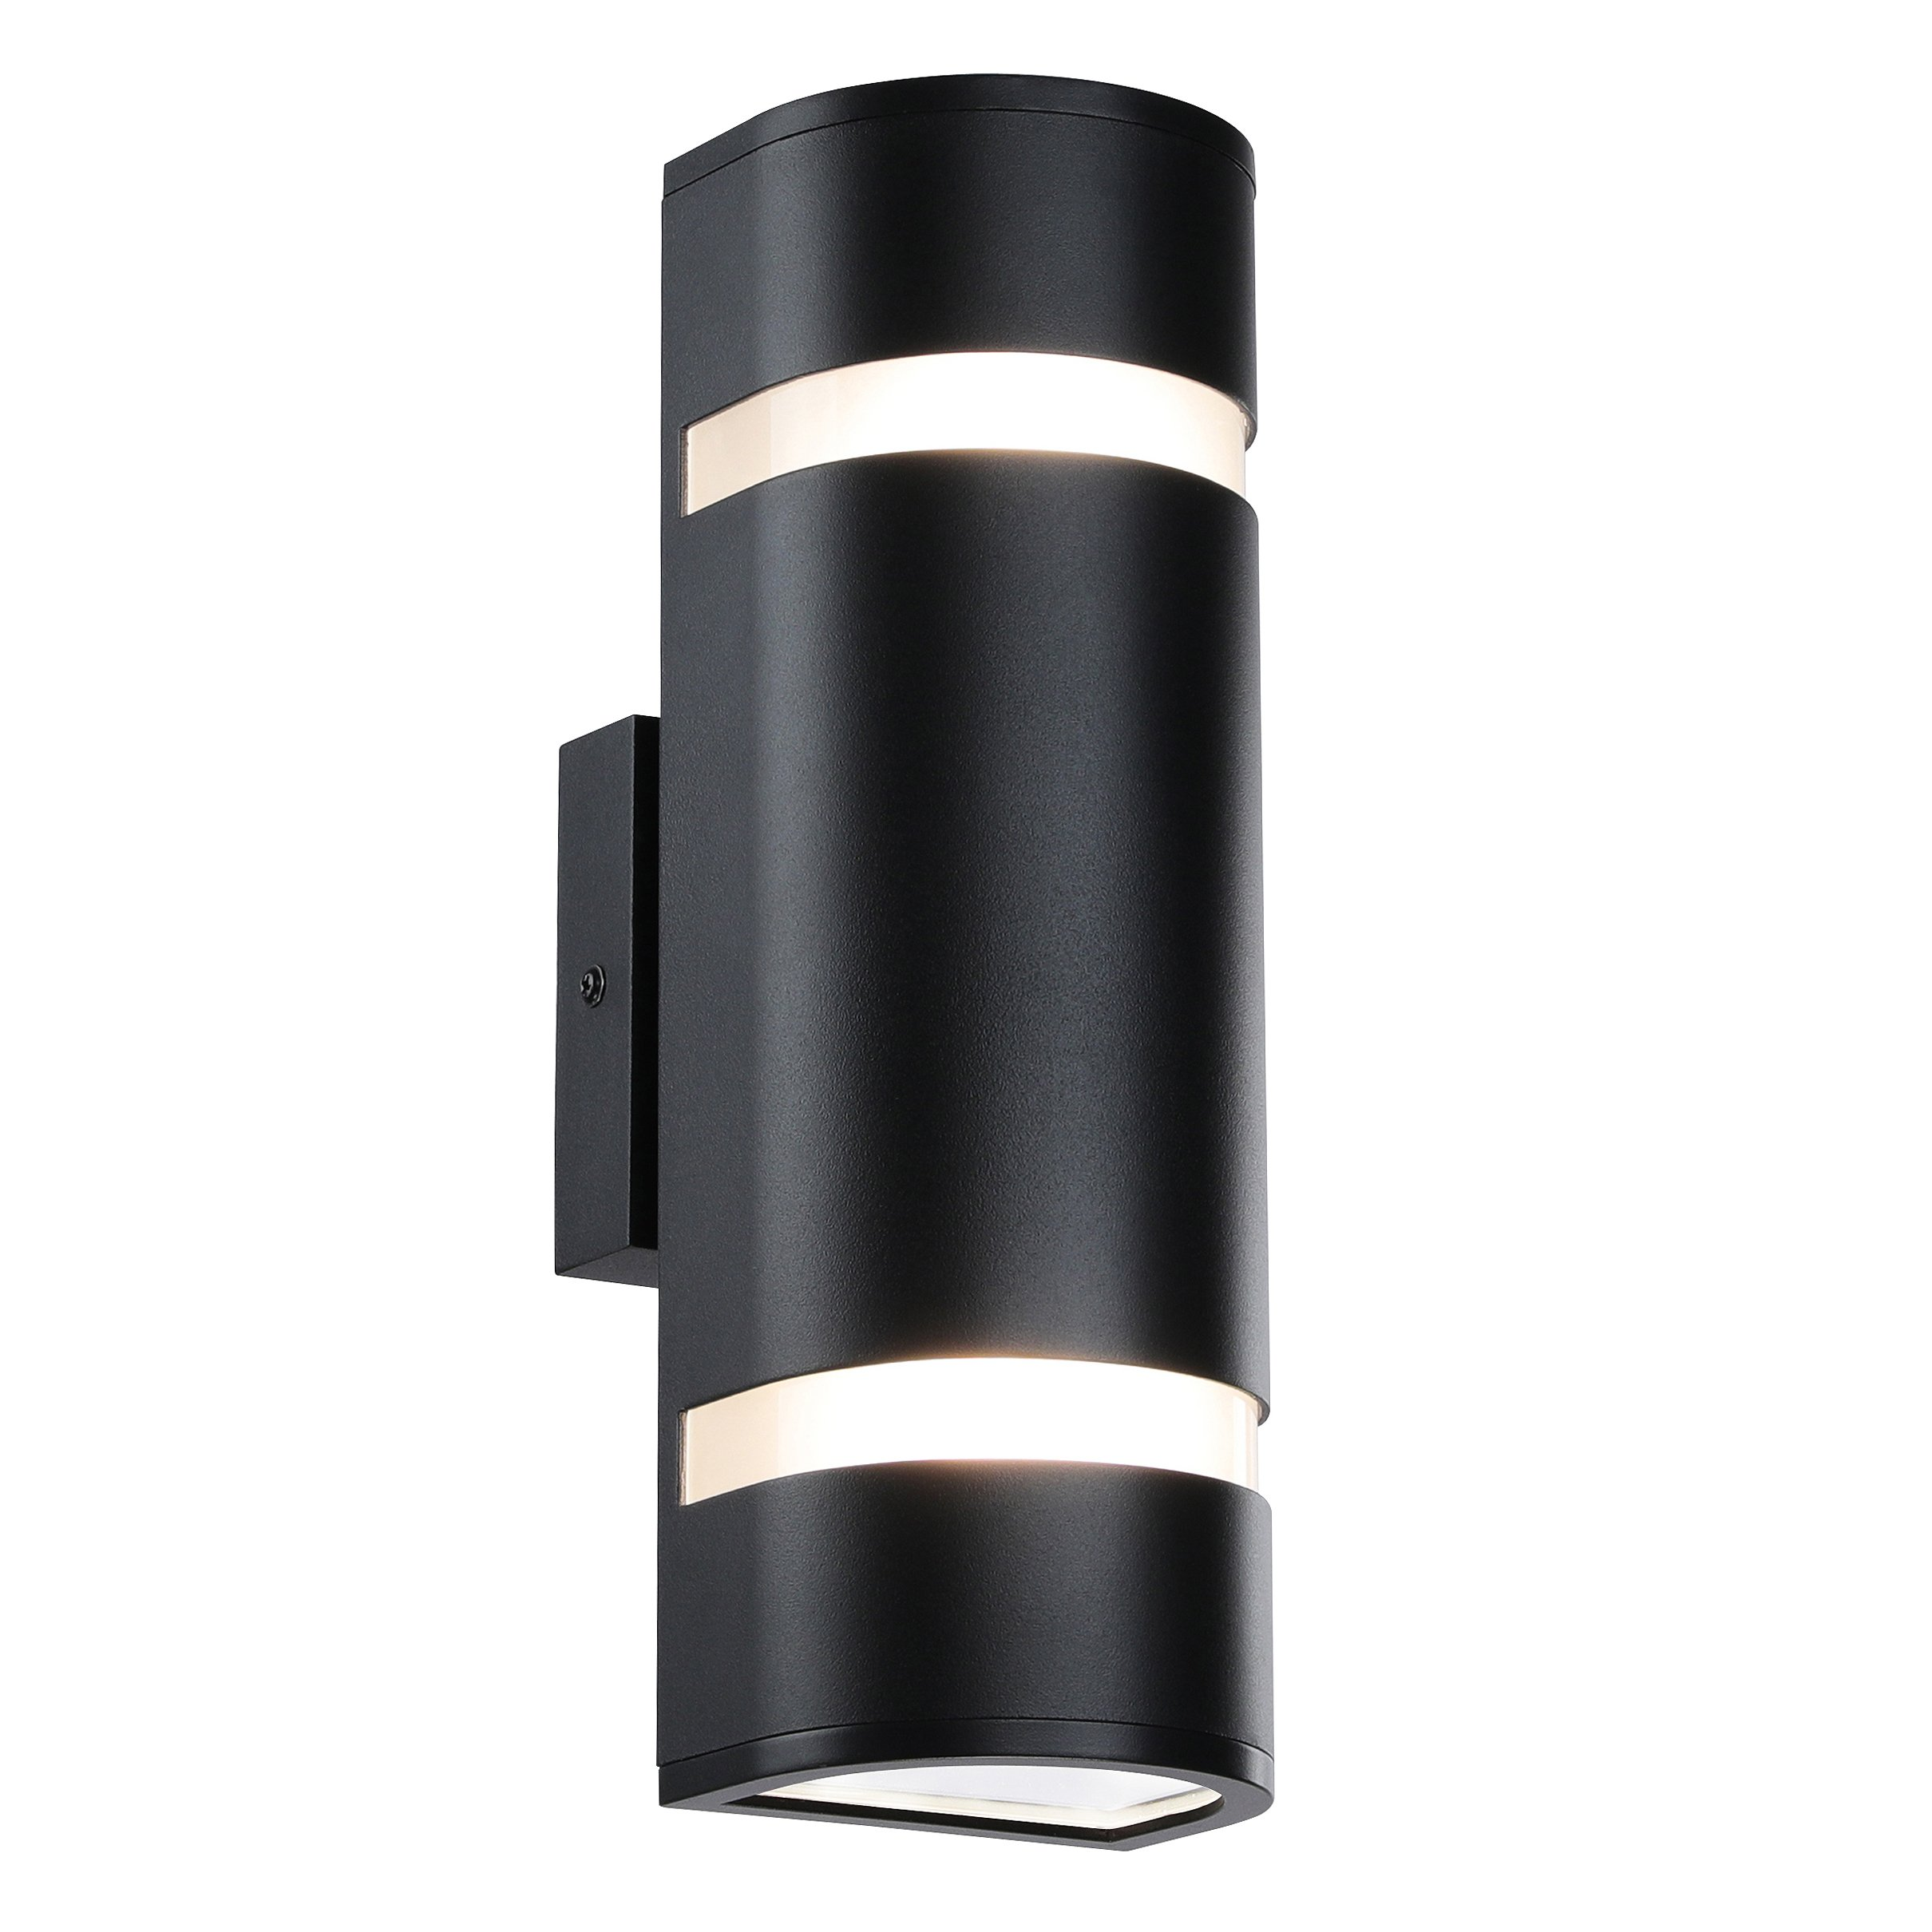 Outdoor Wall Light in D Shape with Aluminum Modern Wall Sconce Black Water Proof Wall Mount Light Suitable for Garden & Patio XiNBEi-Lighting XB-W1112-BK by XiNBEi Lighting